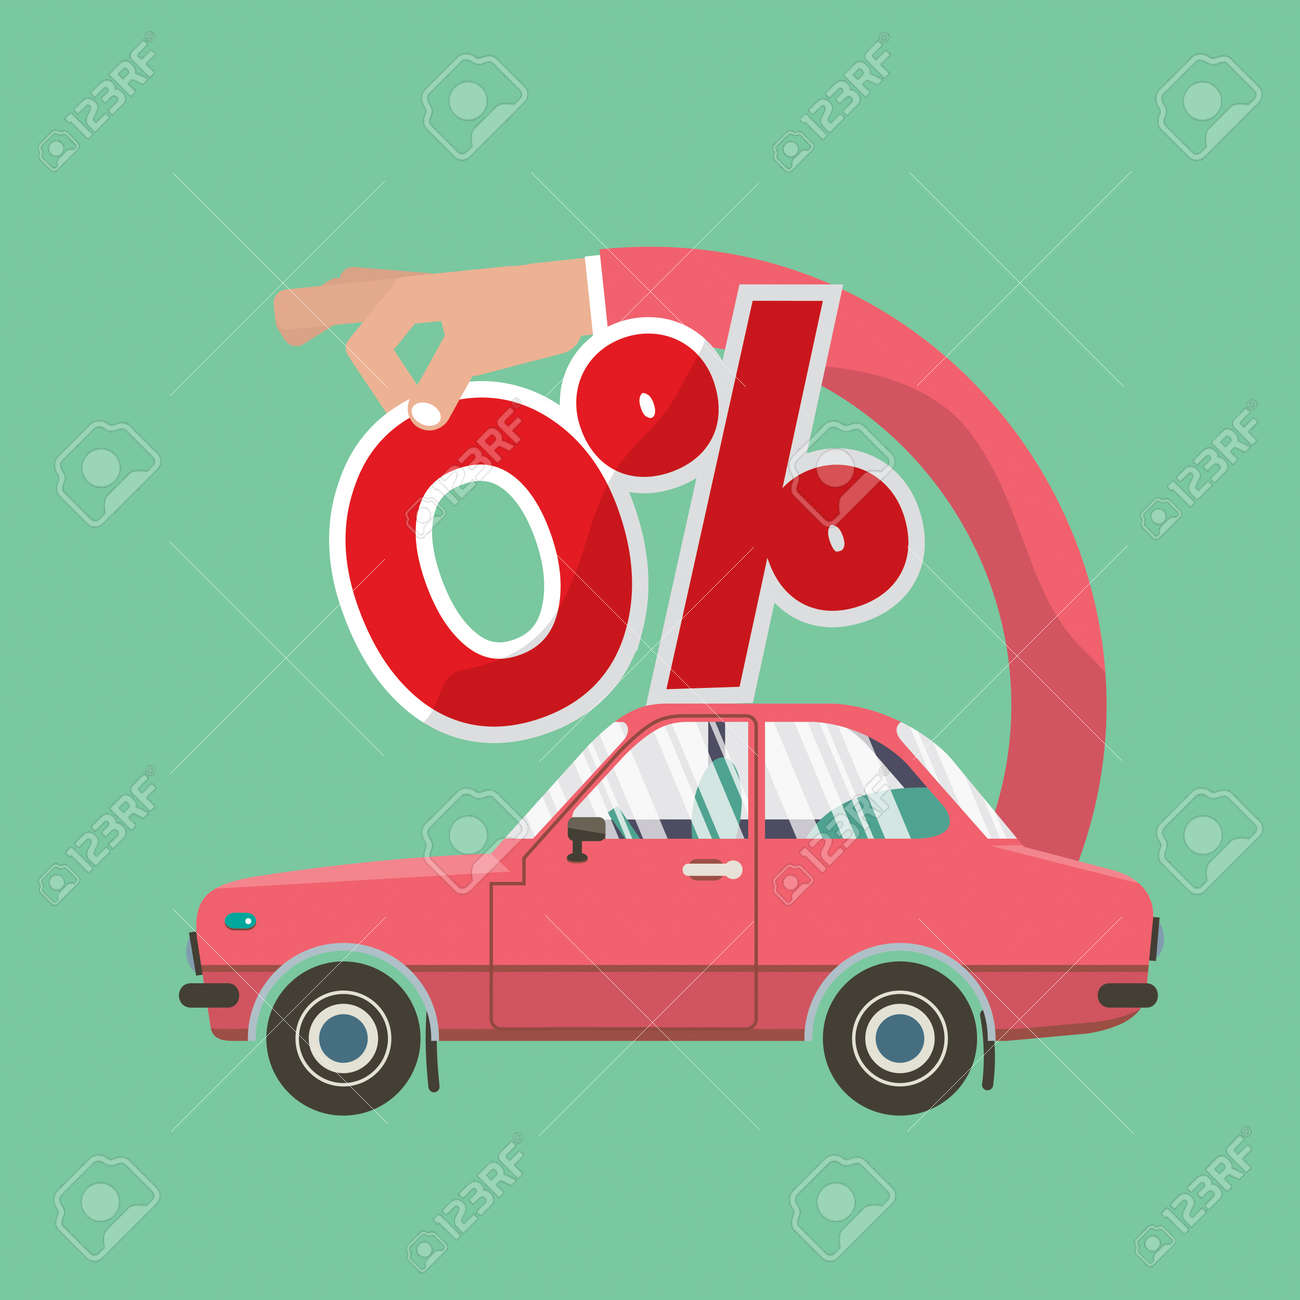 Zero Percent Car Loan Vector Illustration Royalty Free Cliparts ...